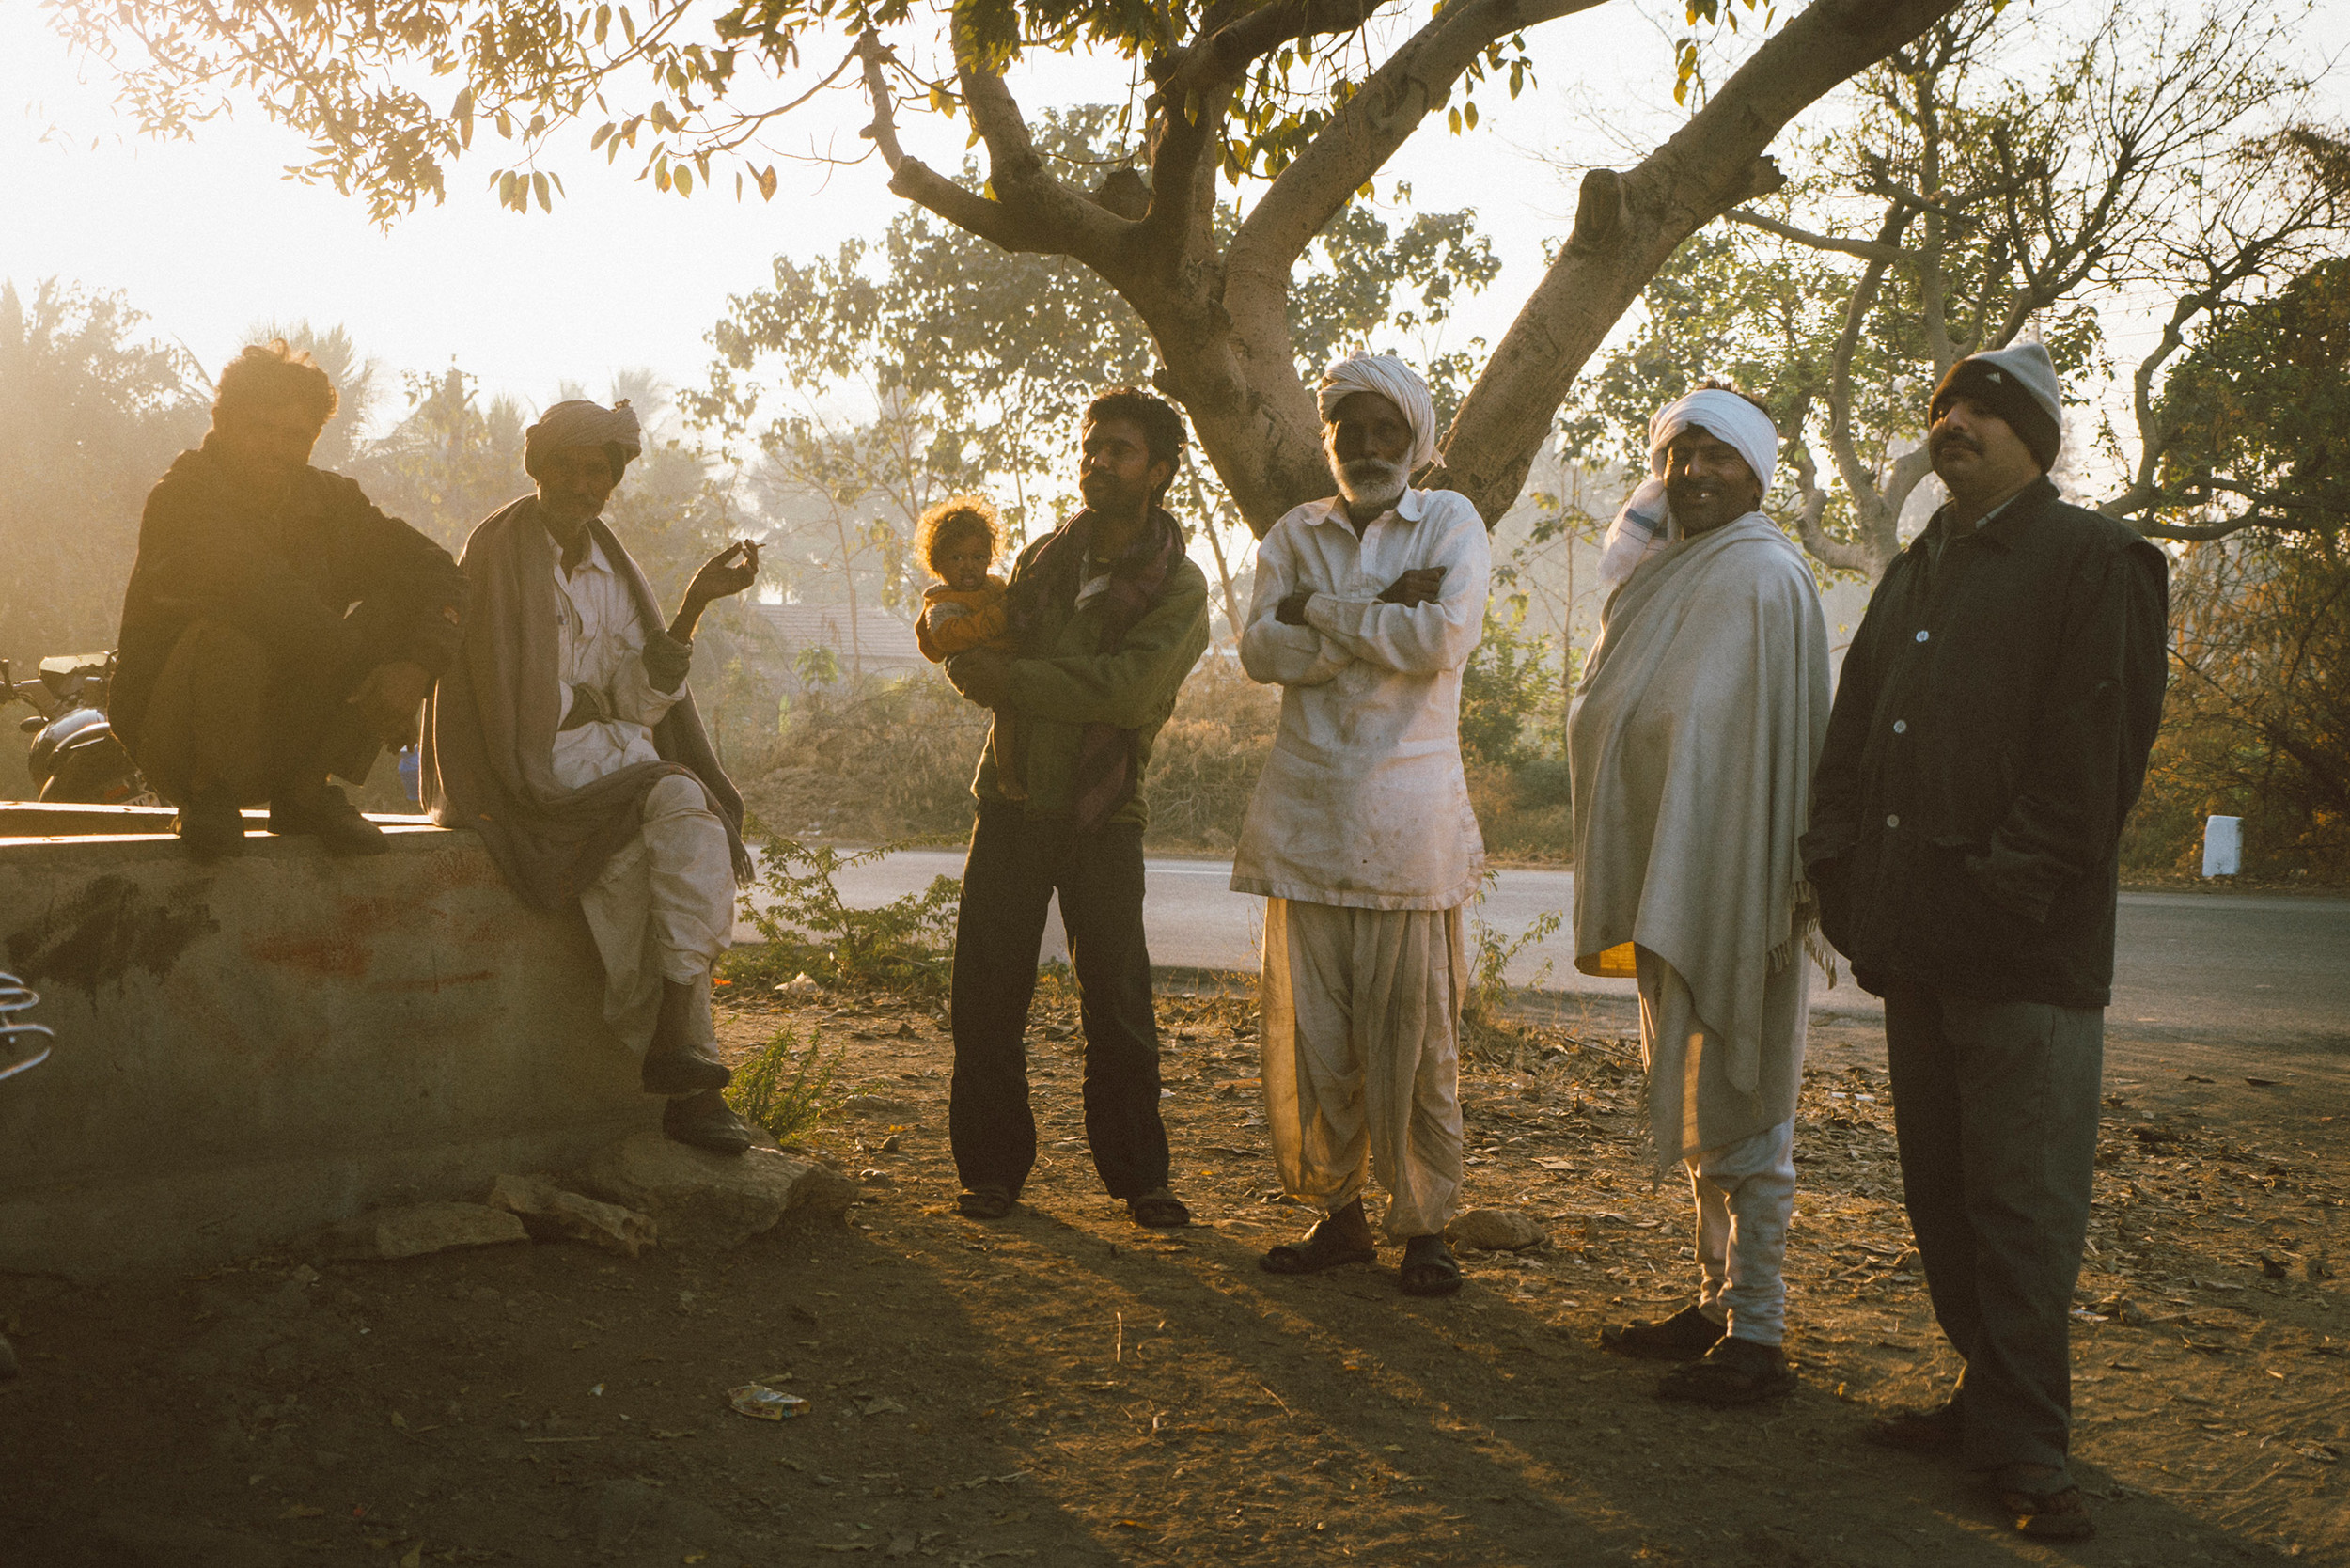 Gujarati men hanging out in the morning